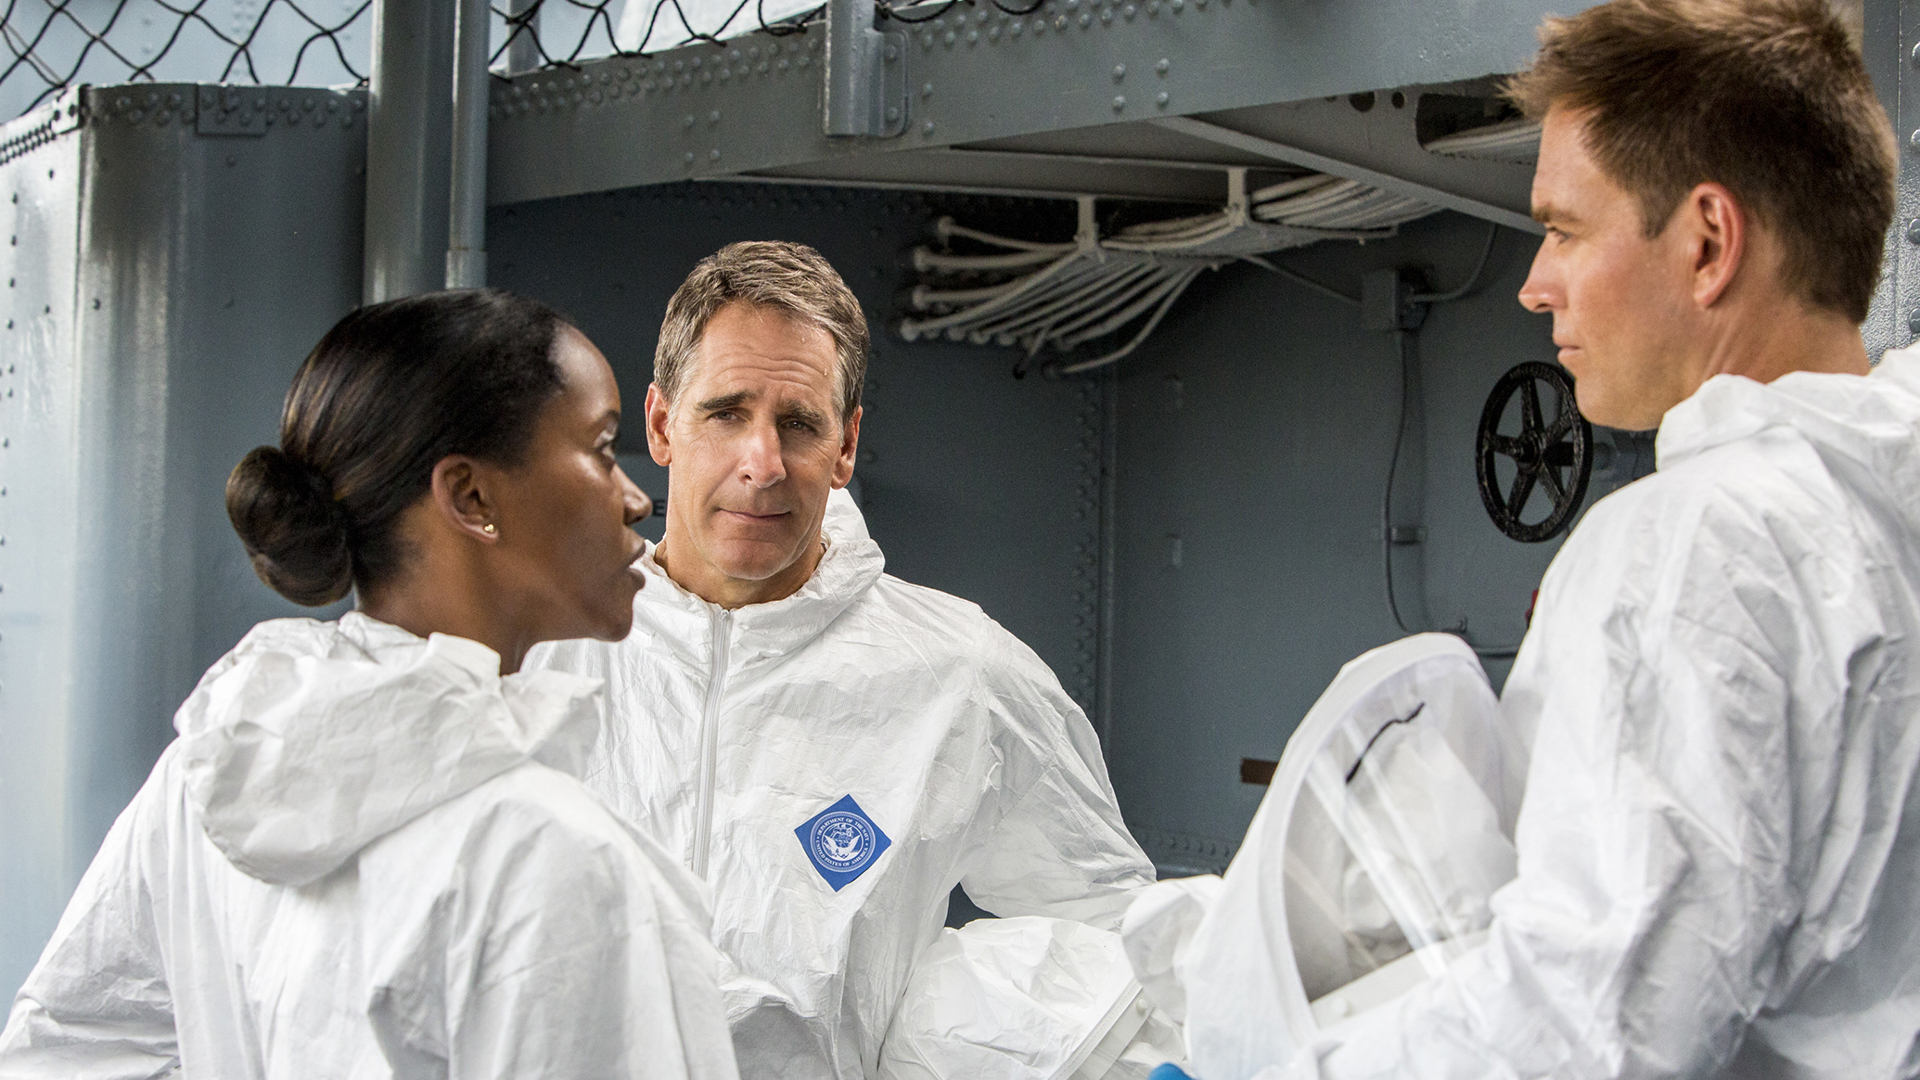 Tony DiNozzo on NCIS: New Orleans